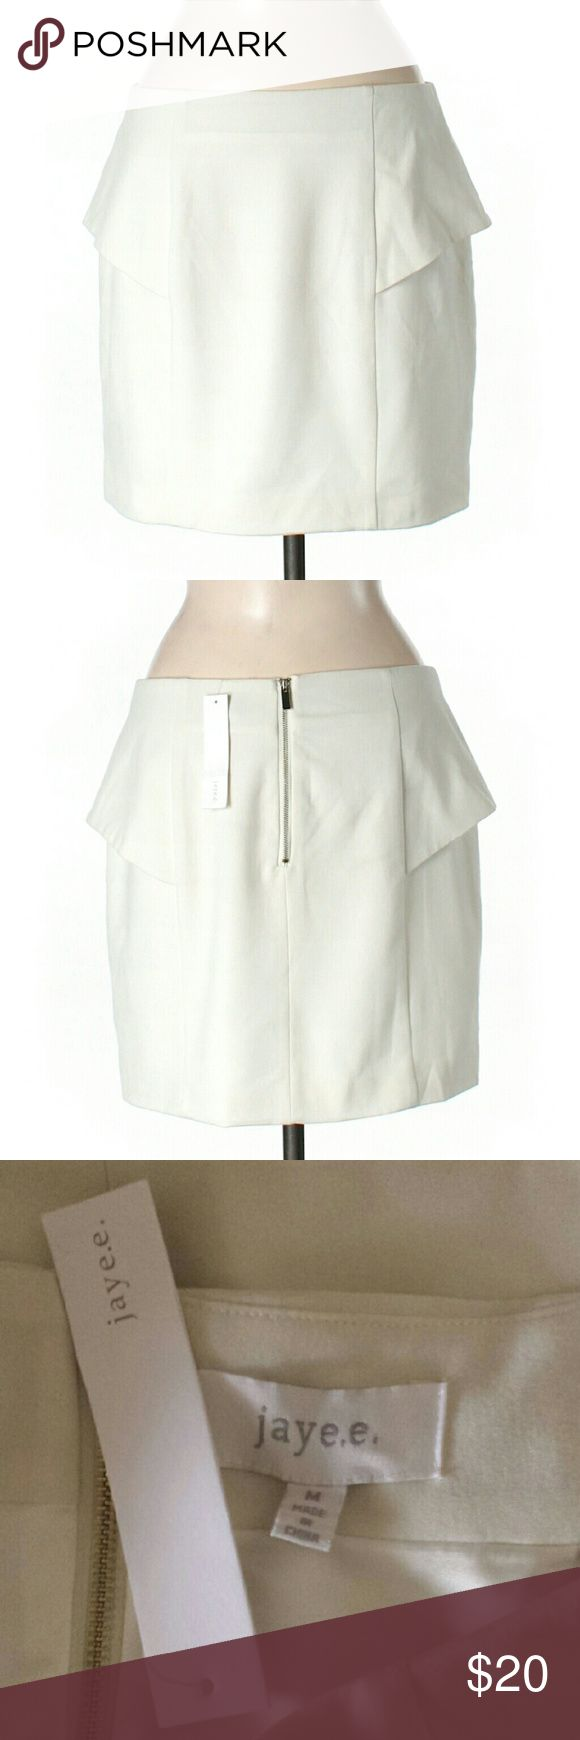 NWT Jaye E. Ivory Work Skirt Size M  Length 17in  Pencil silhouette with cute peplum detail  Retail $45       DRY CLEAN ONLY   #NWT #jayee #ivory #offwhite #skirt #work #workattire #casualskirt #spring #summer #workskirt #peplum #peplumskirt #pencil #fancy                             M3 Jaye E.  Skirts Pencil